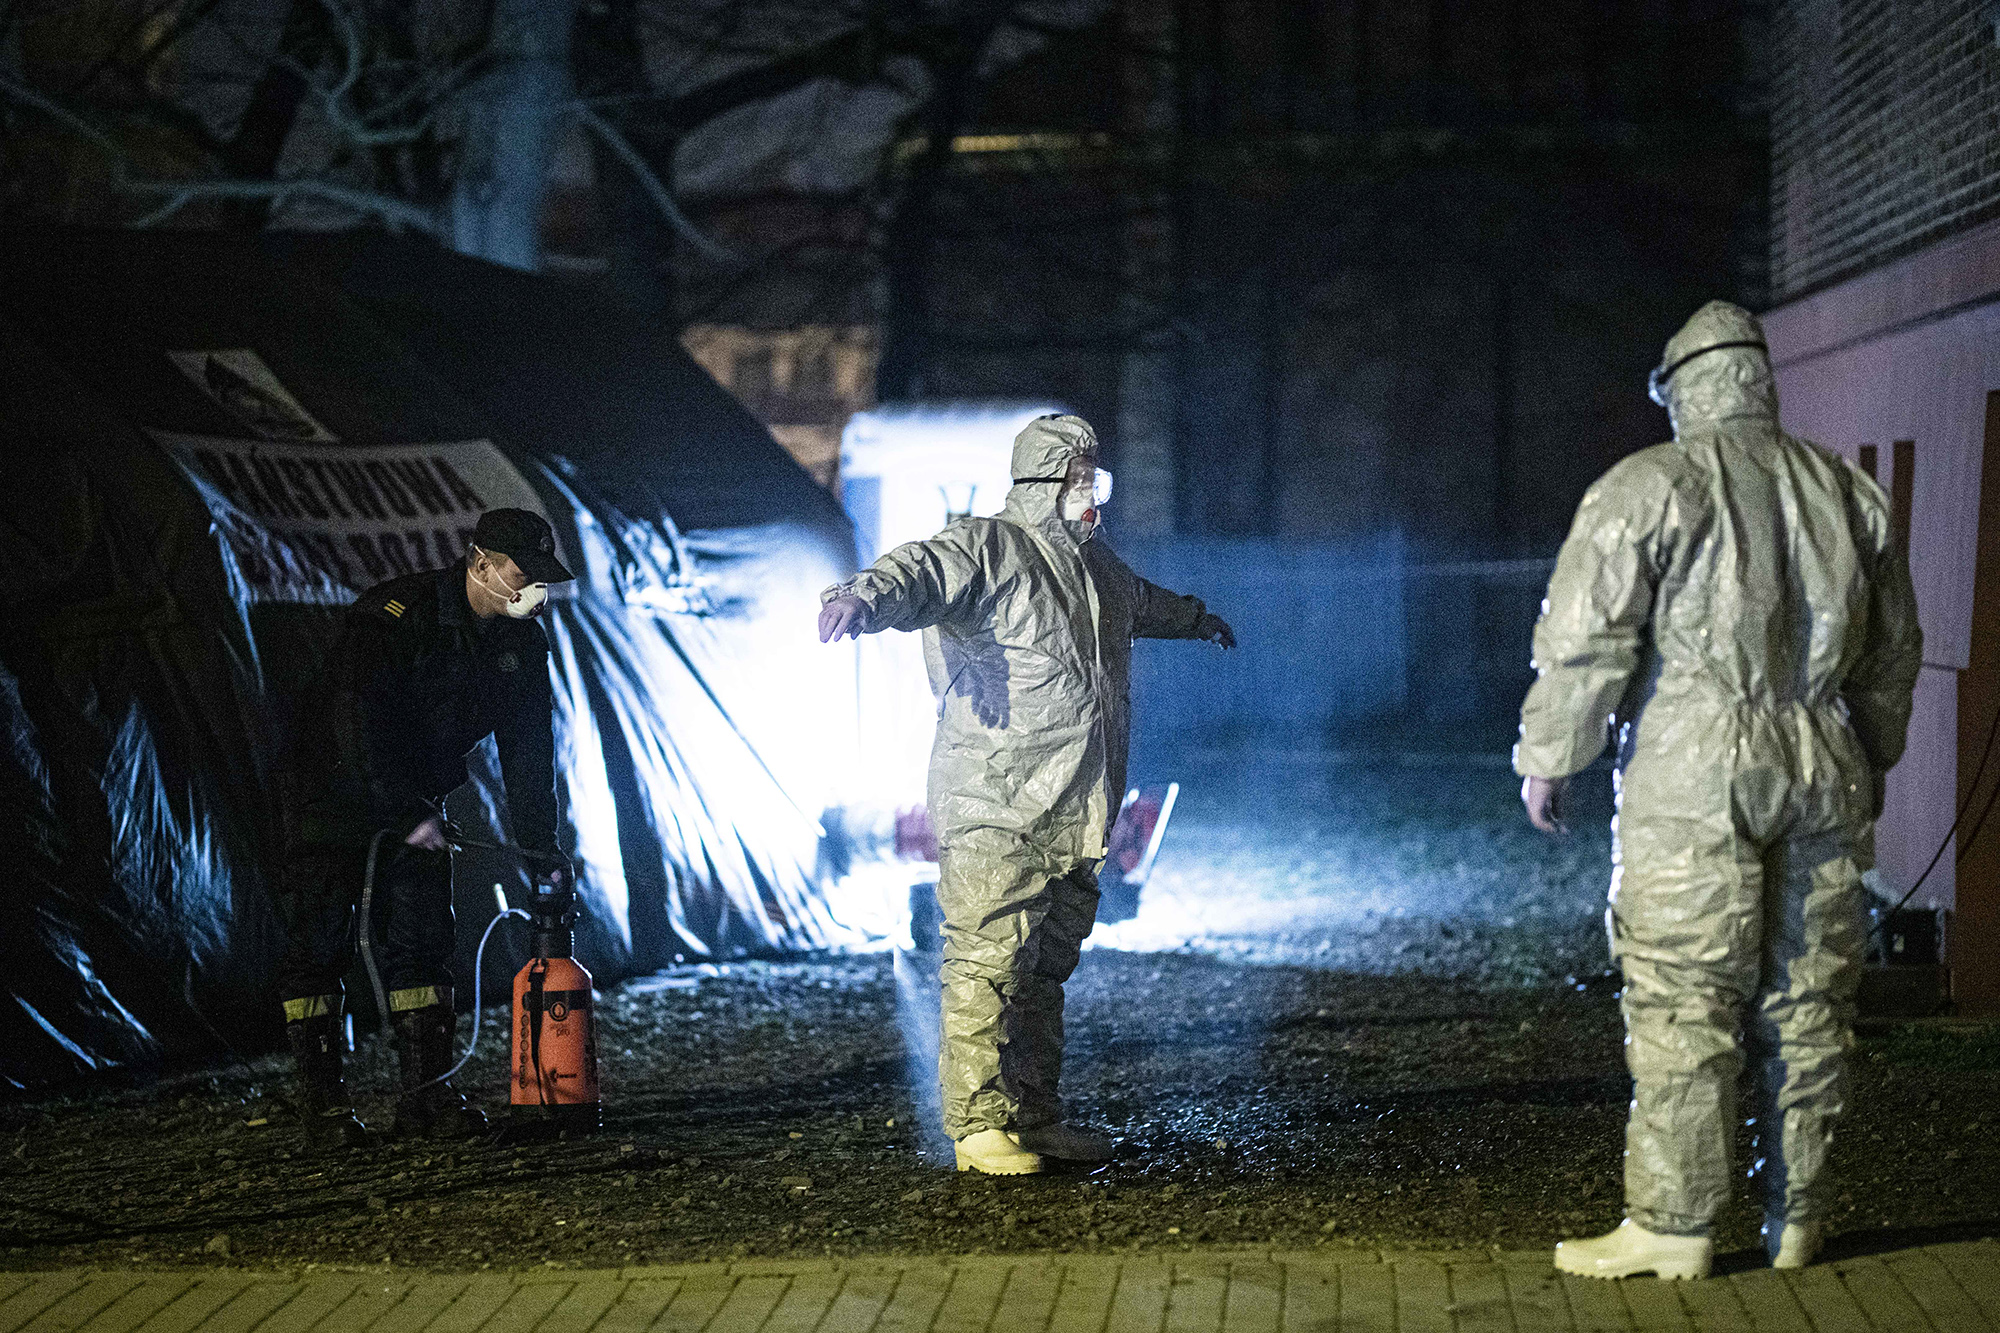 ZGORZELEC, POLAND - MARCH 14: Two men with protective clothing become disinfected after checking people crossing the german-polish border on March 14, 2020 in Zgorzelec, Poland. Poland and Czech Republic decide to close the border at the night from 14th to 15th of March to Germany trying to stop spreading of Corona virus. (Photo by Florian Gaertner/Photothek via Getty Images)